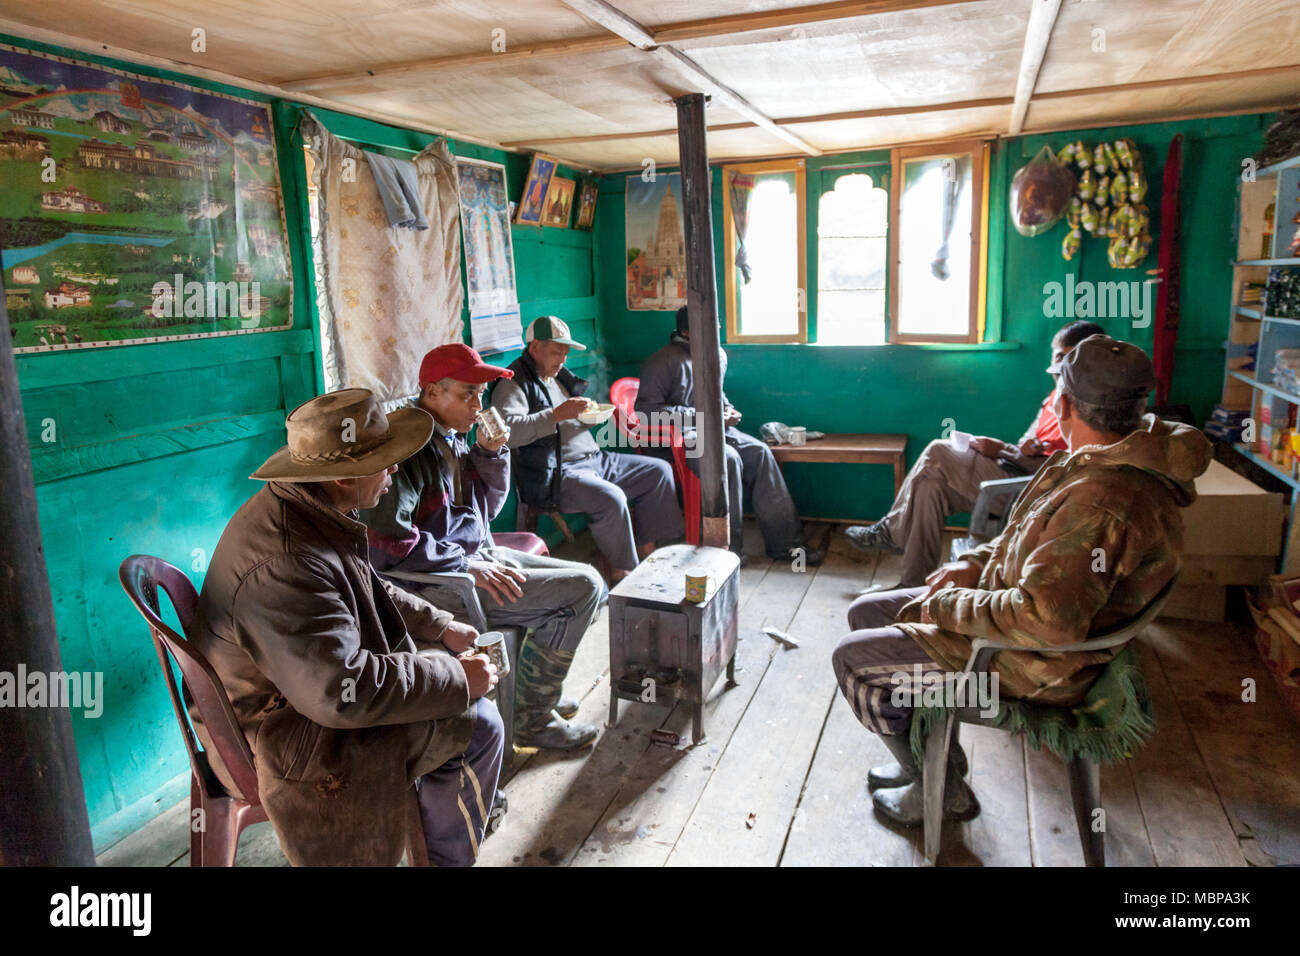 People enjoying tea around Bukhari in small house on the road trip to Bhutan in Himalayas - Stock Image